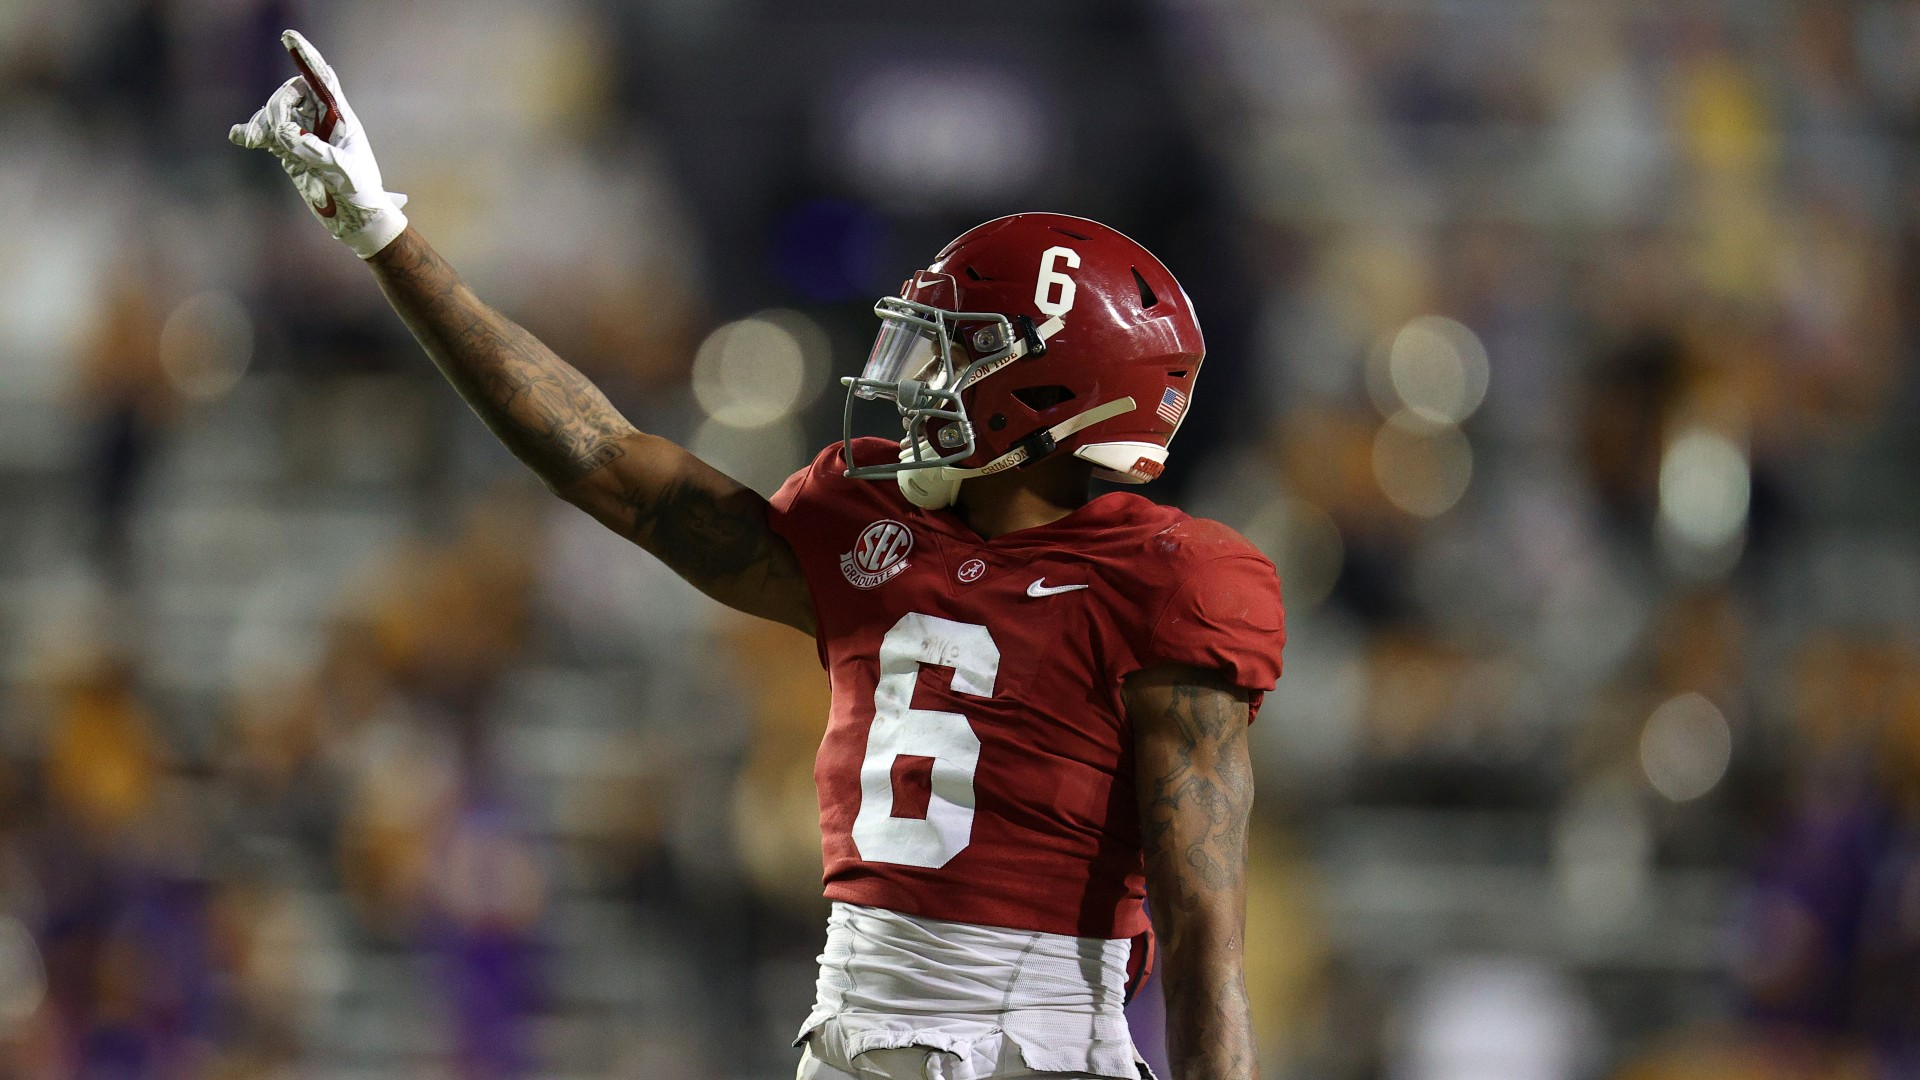 Alabama vs. Ohio State Promo: Bet $20, Win $125 if Devonta Smith Catches a Pass! article feature image